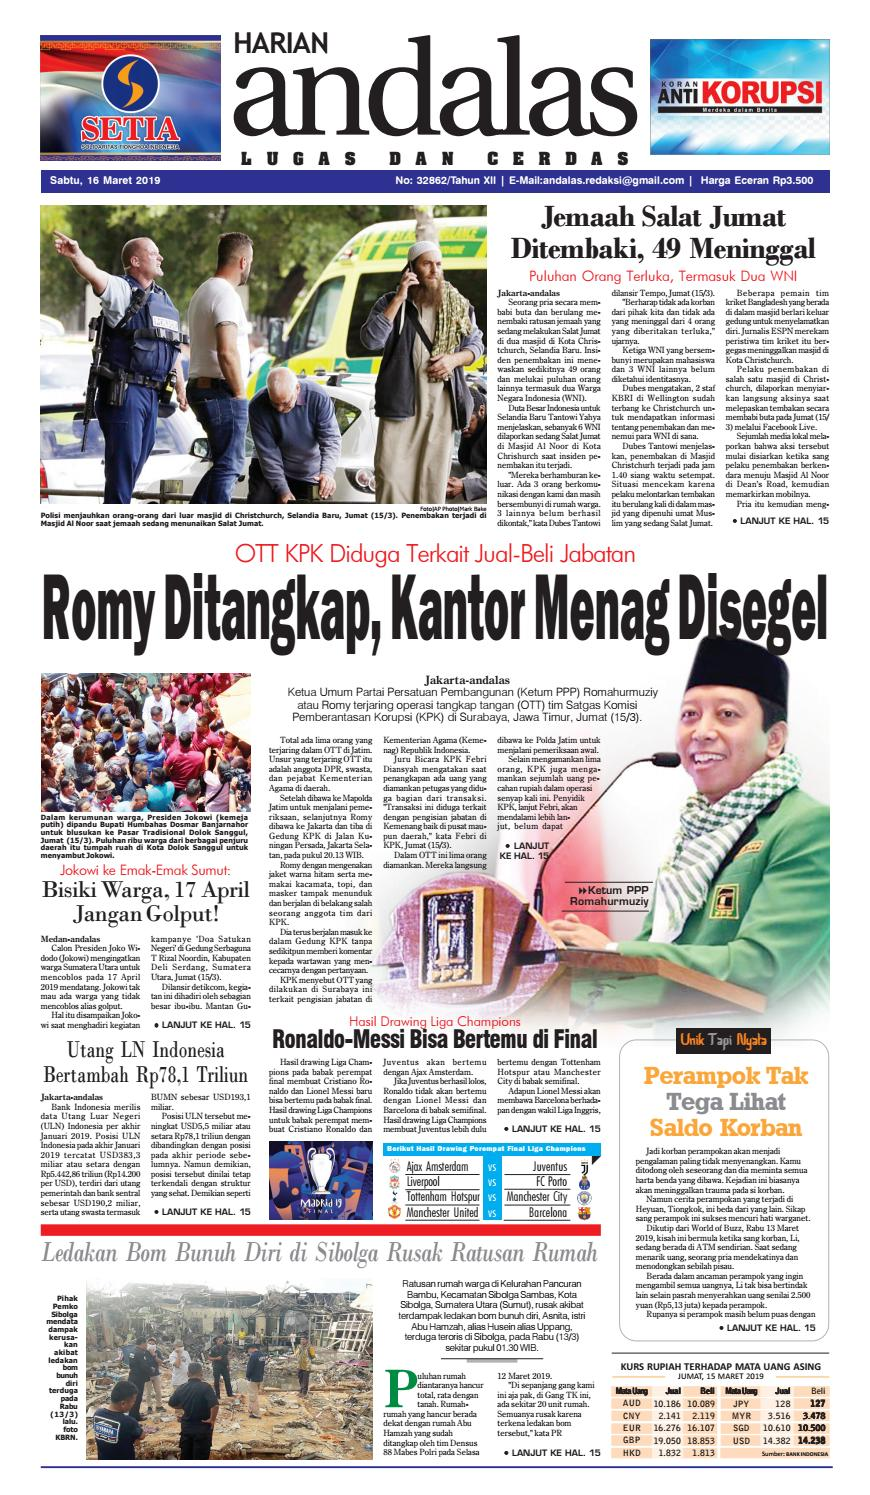 Epaper Harian Andalas 16 Maret 2019 By Media Andalas Issuu